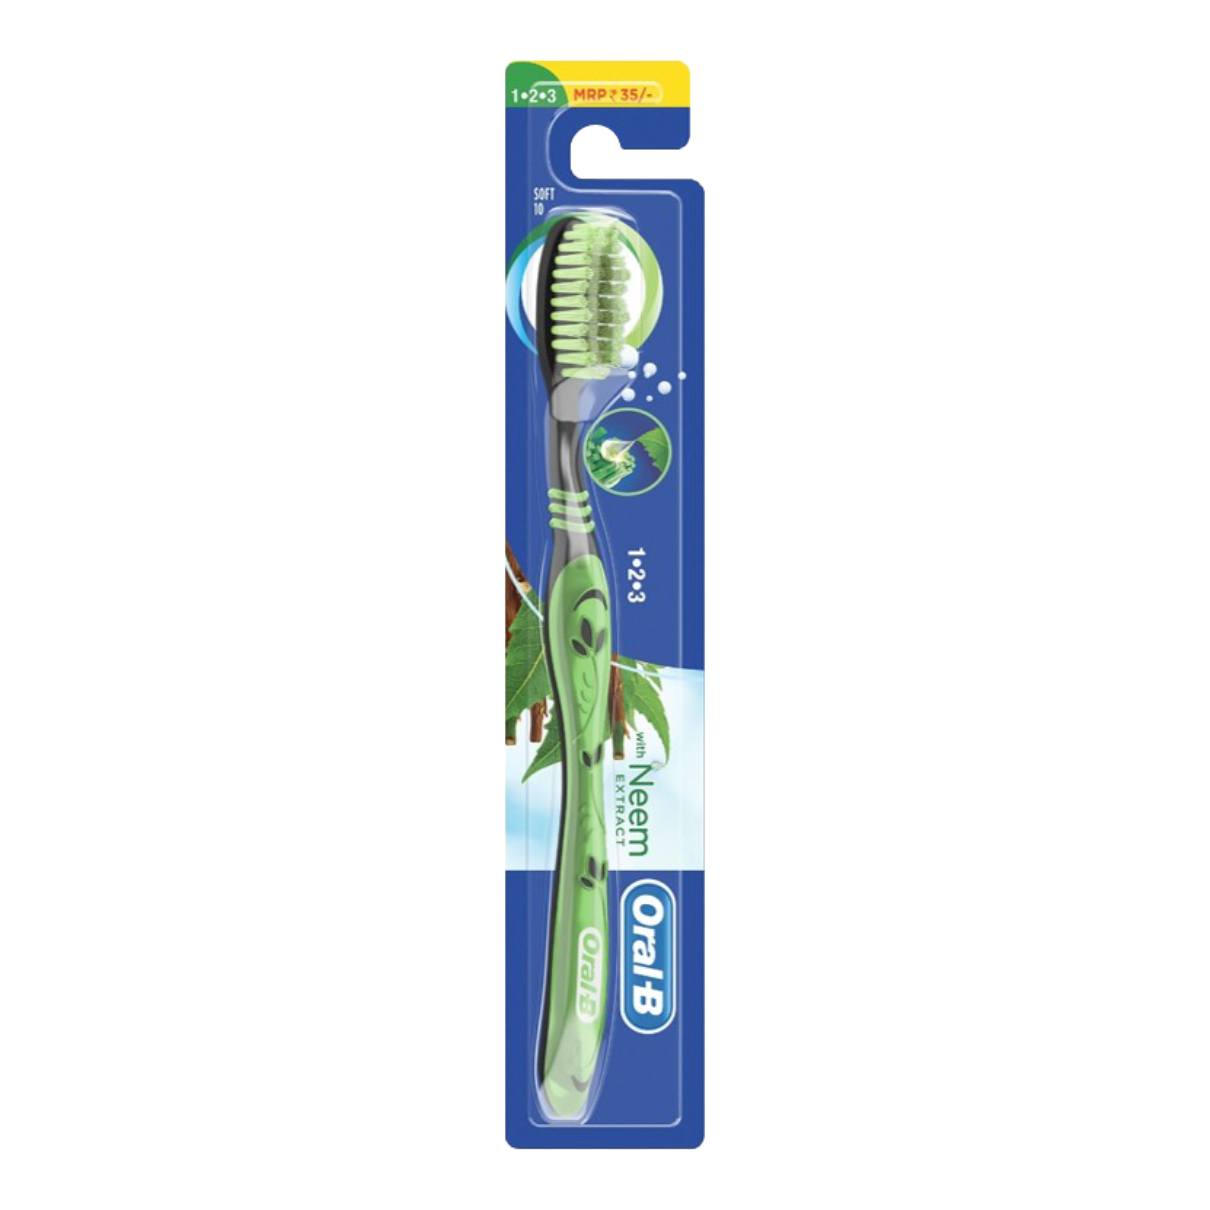 Oral-B (with Neem Extract) Toothbrush